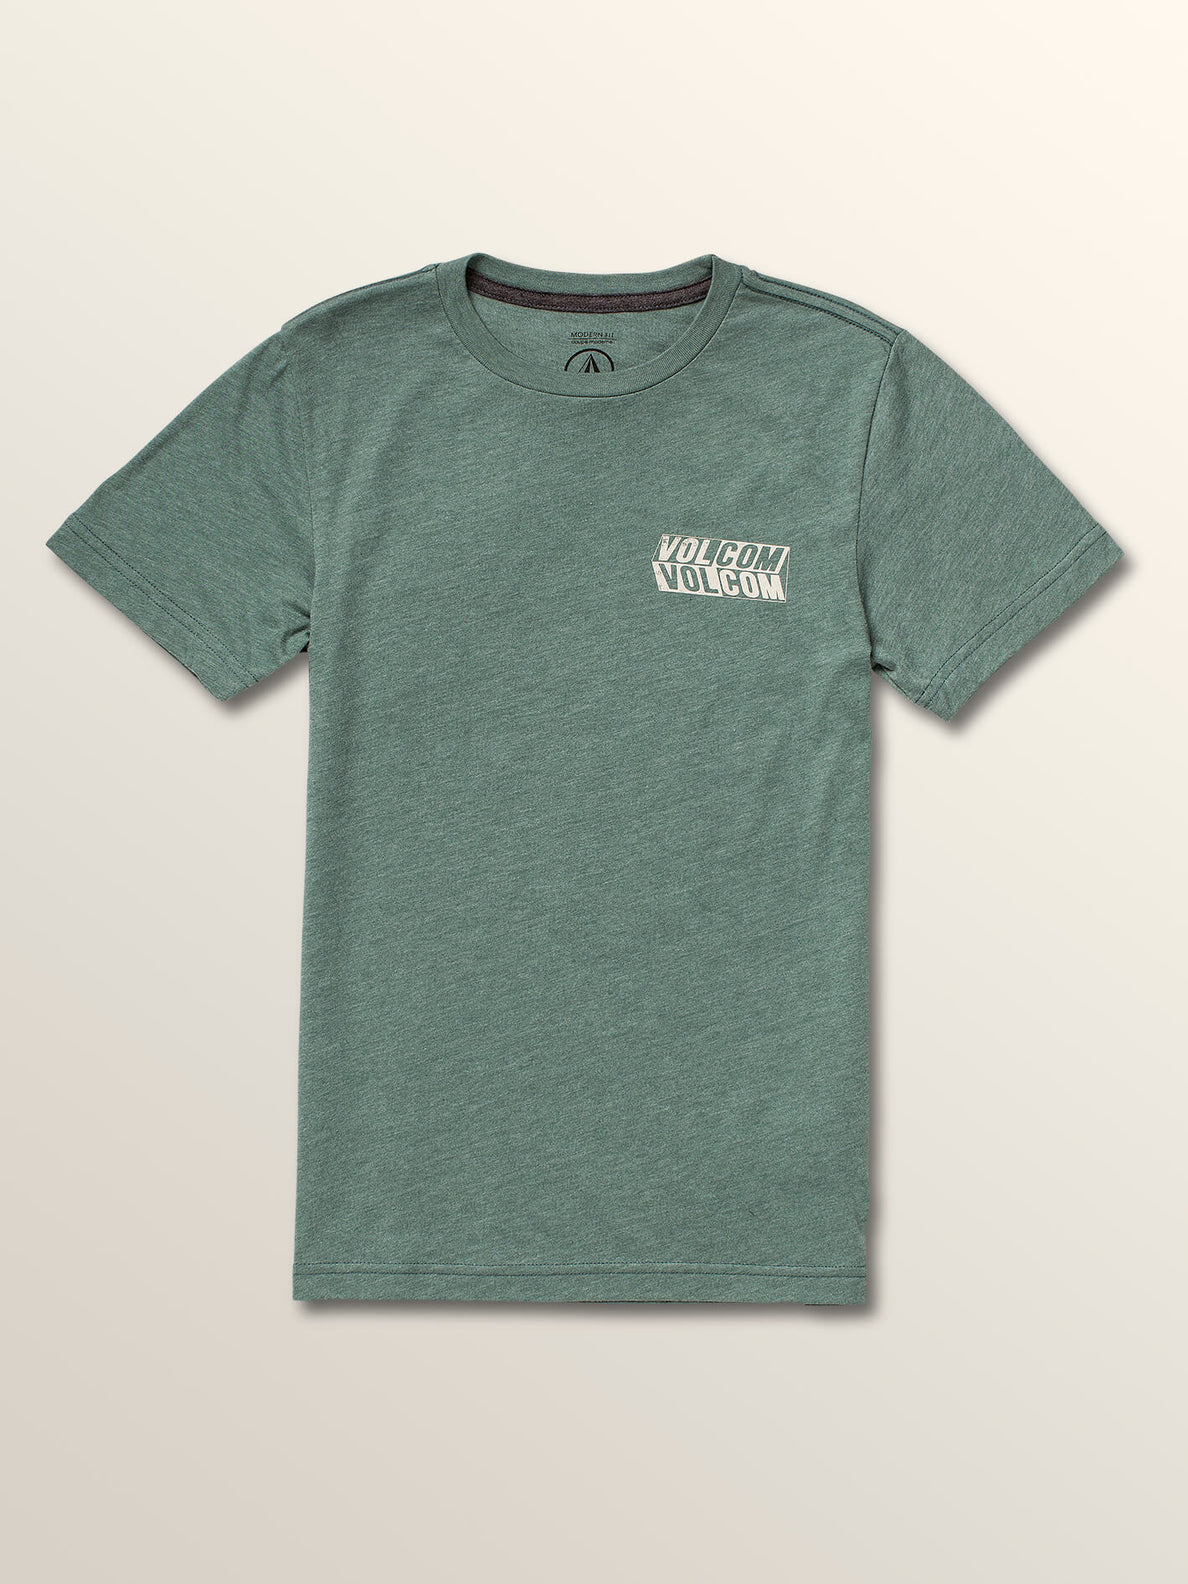 Big Boys Bend Short Sleeve Tee In Pine, Front View